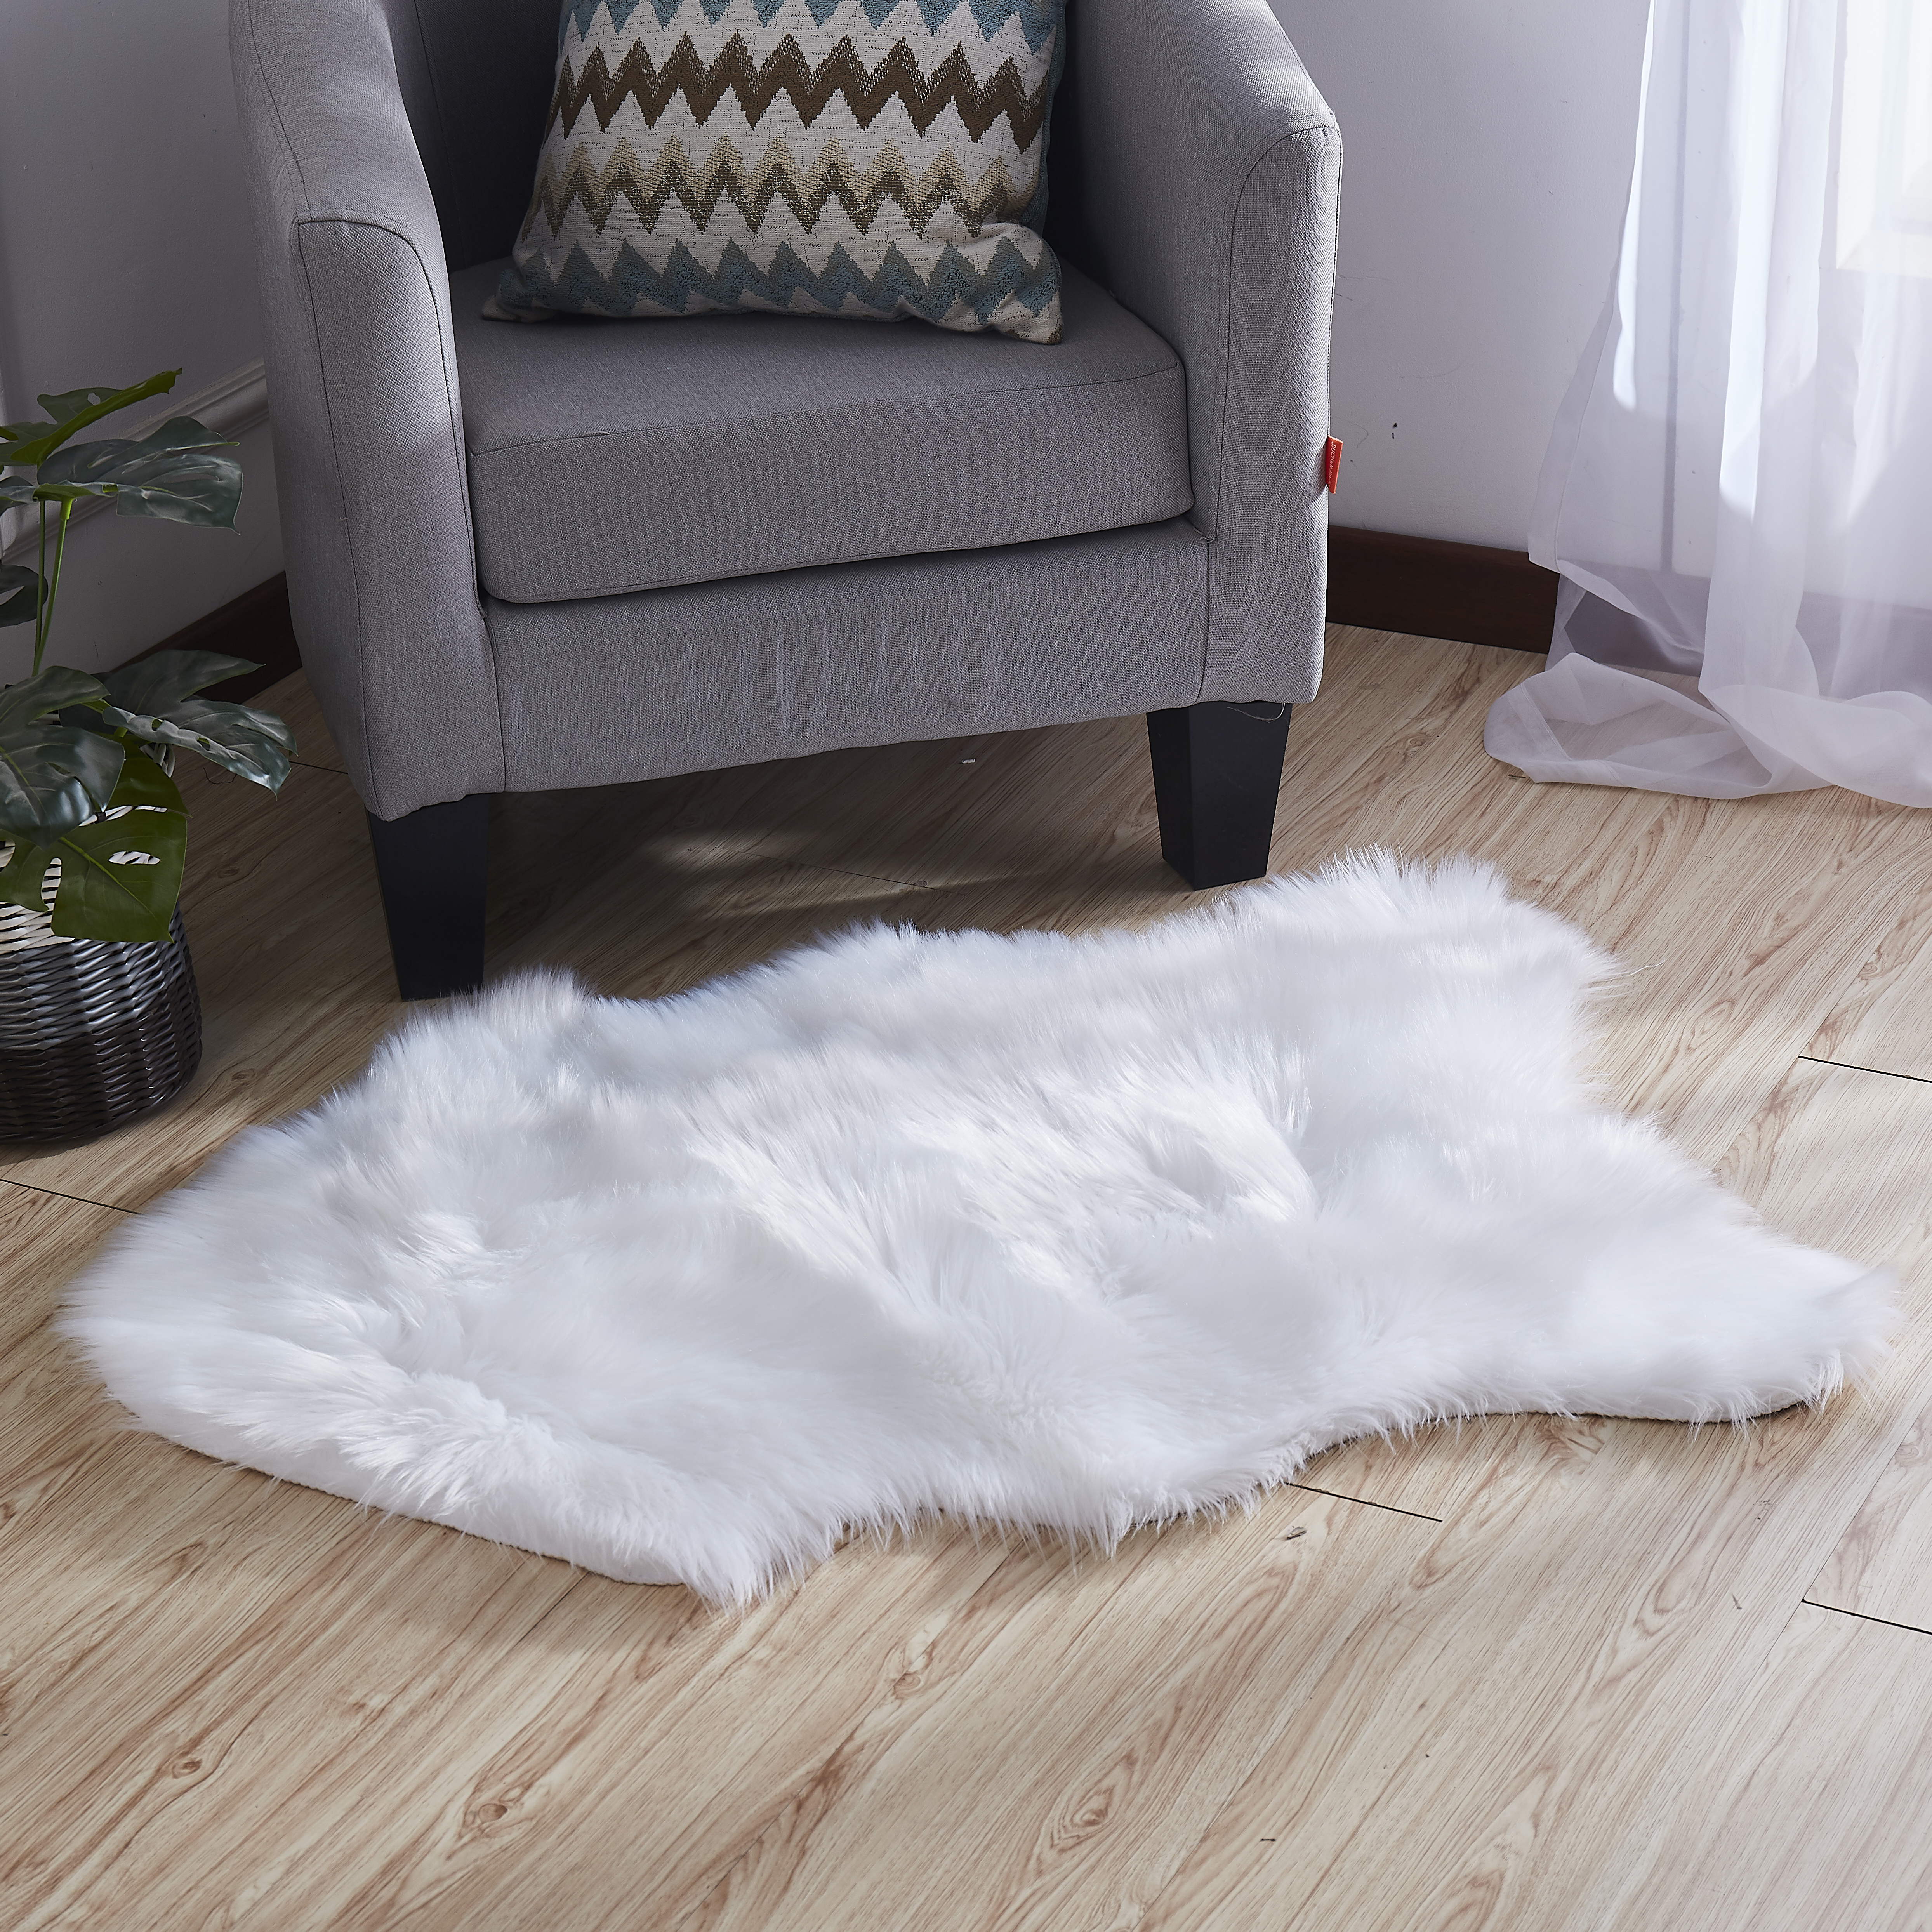 Luxury Decorative Faux Fur Rug In White